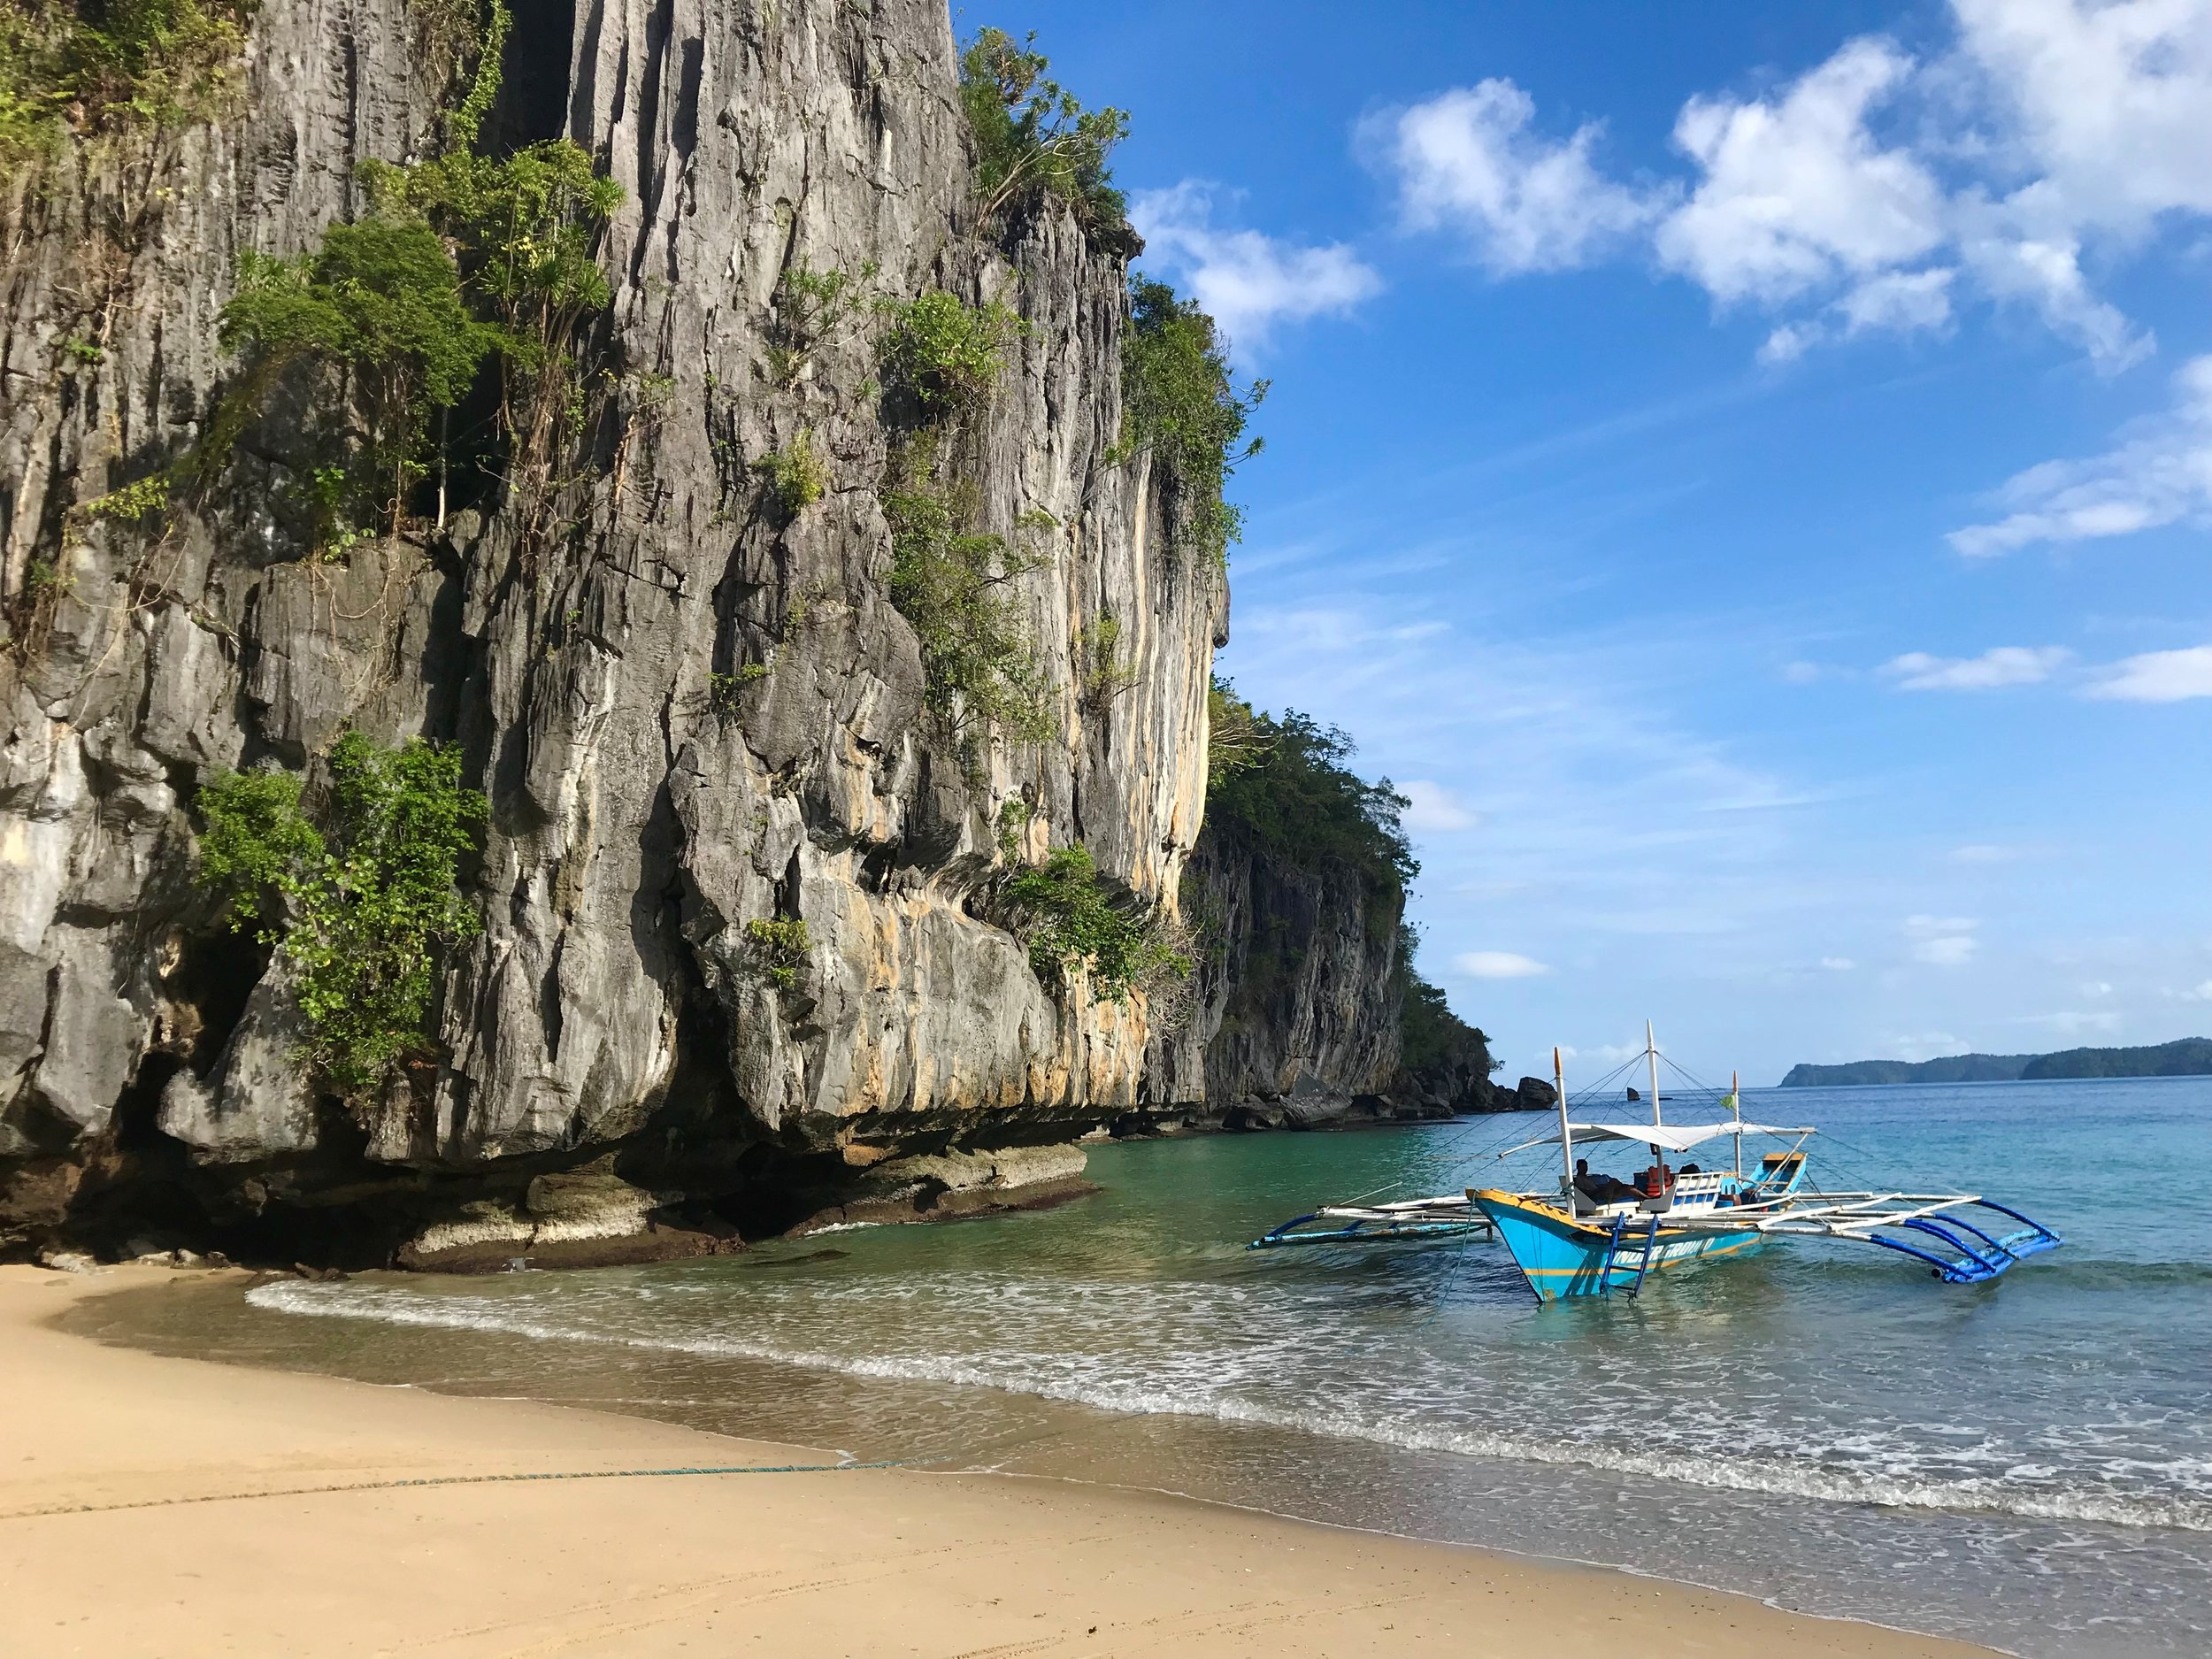 Sabang: a short walk from here through the jungle takes you to the Underground River